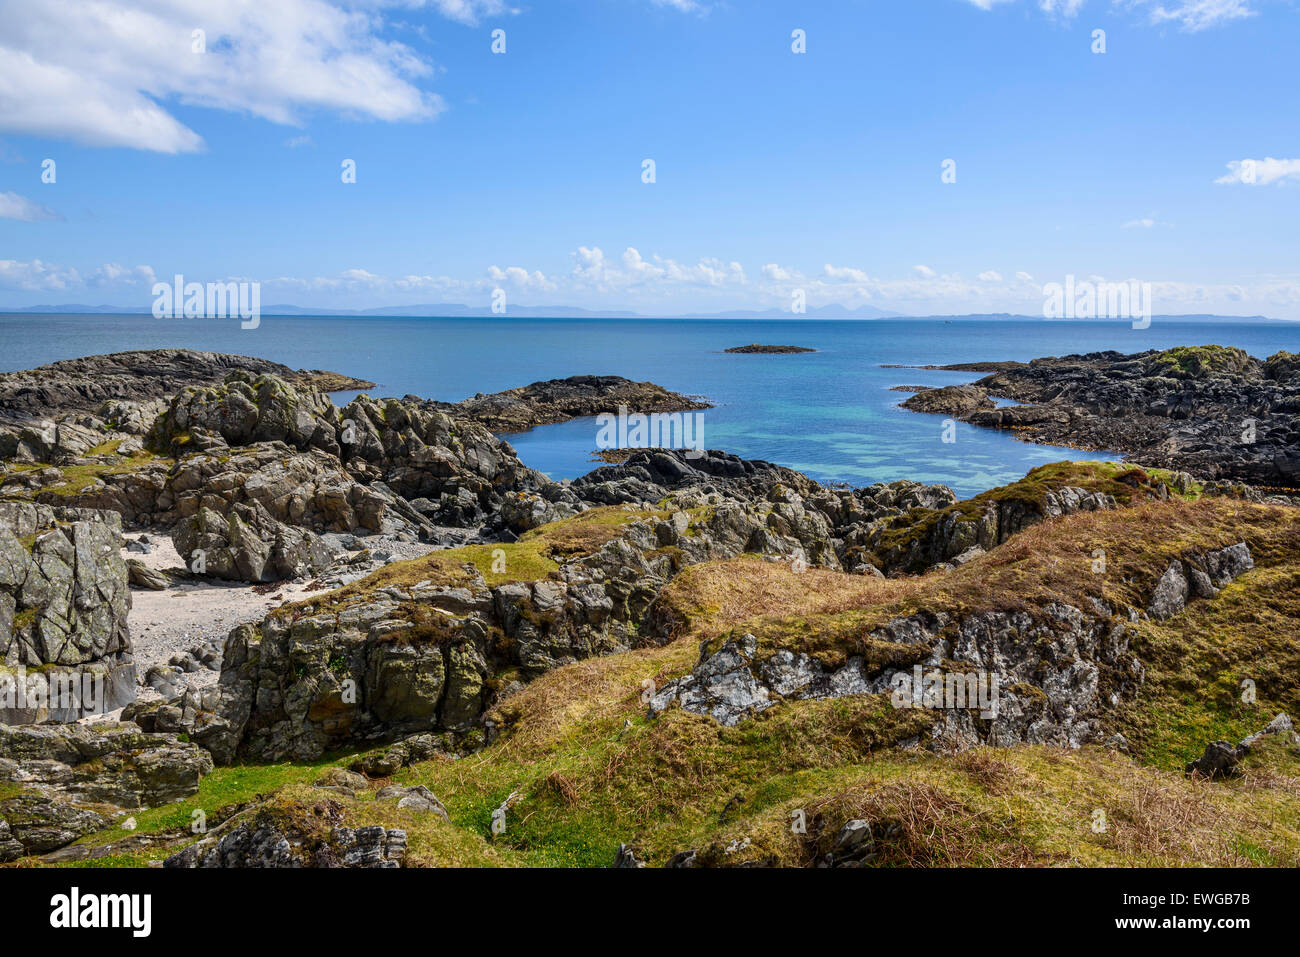 Rocky shore near Uisken beach, near Bunessan, Isle of Mull, Hebrides, Argyll and Bute, Scotland - Stock Image